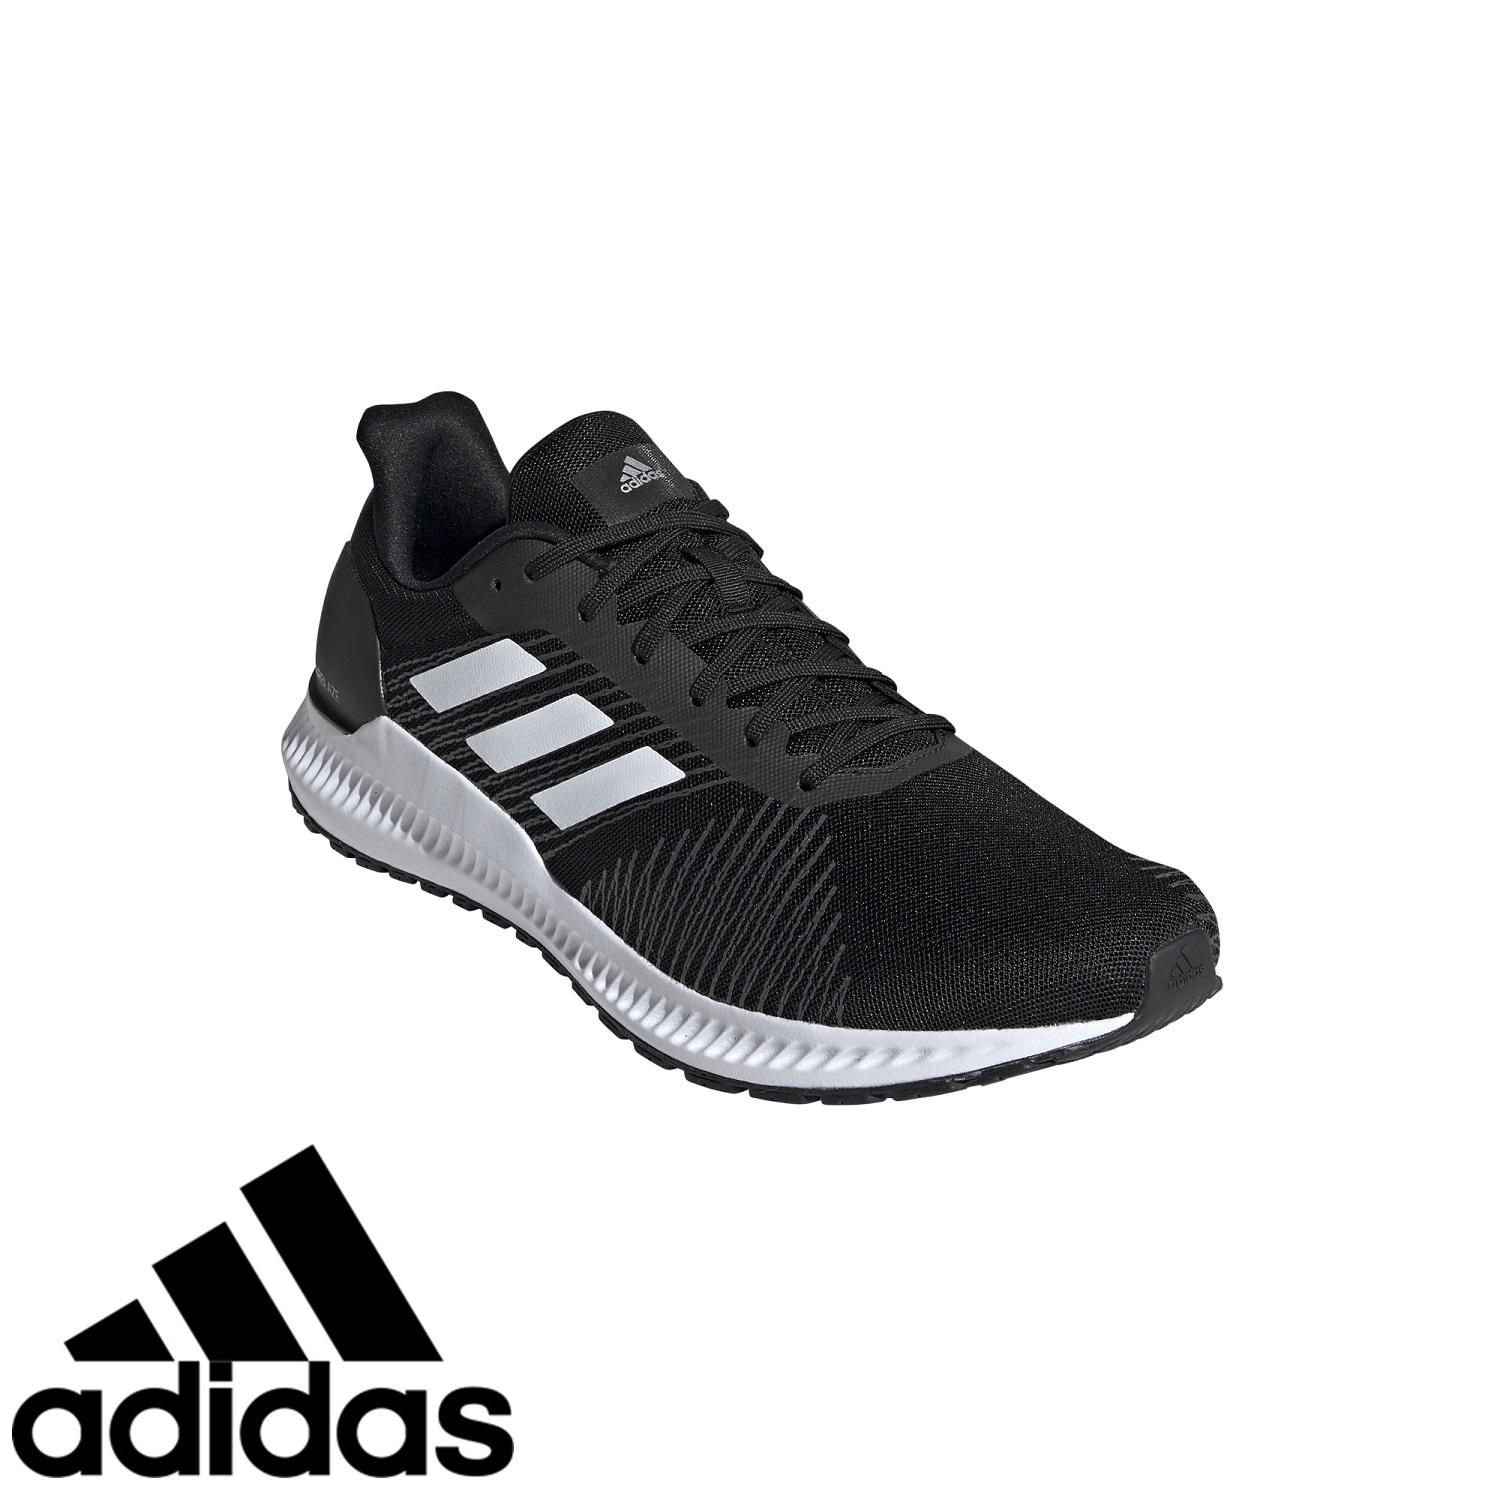 98bf05345 Adidas Sports Shoes Philippines - Adidas Sports Clothing for sale - prices    reviews